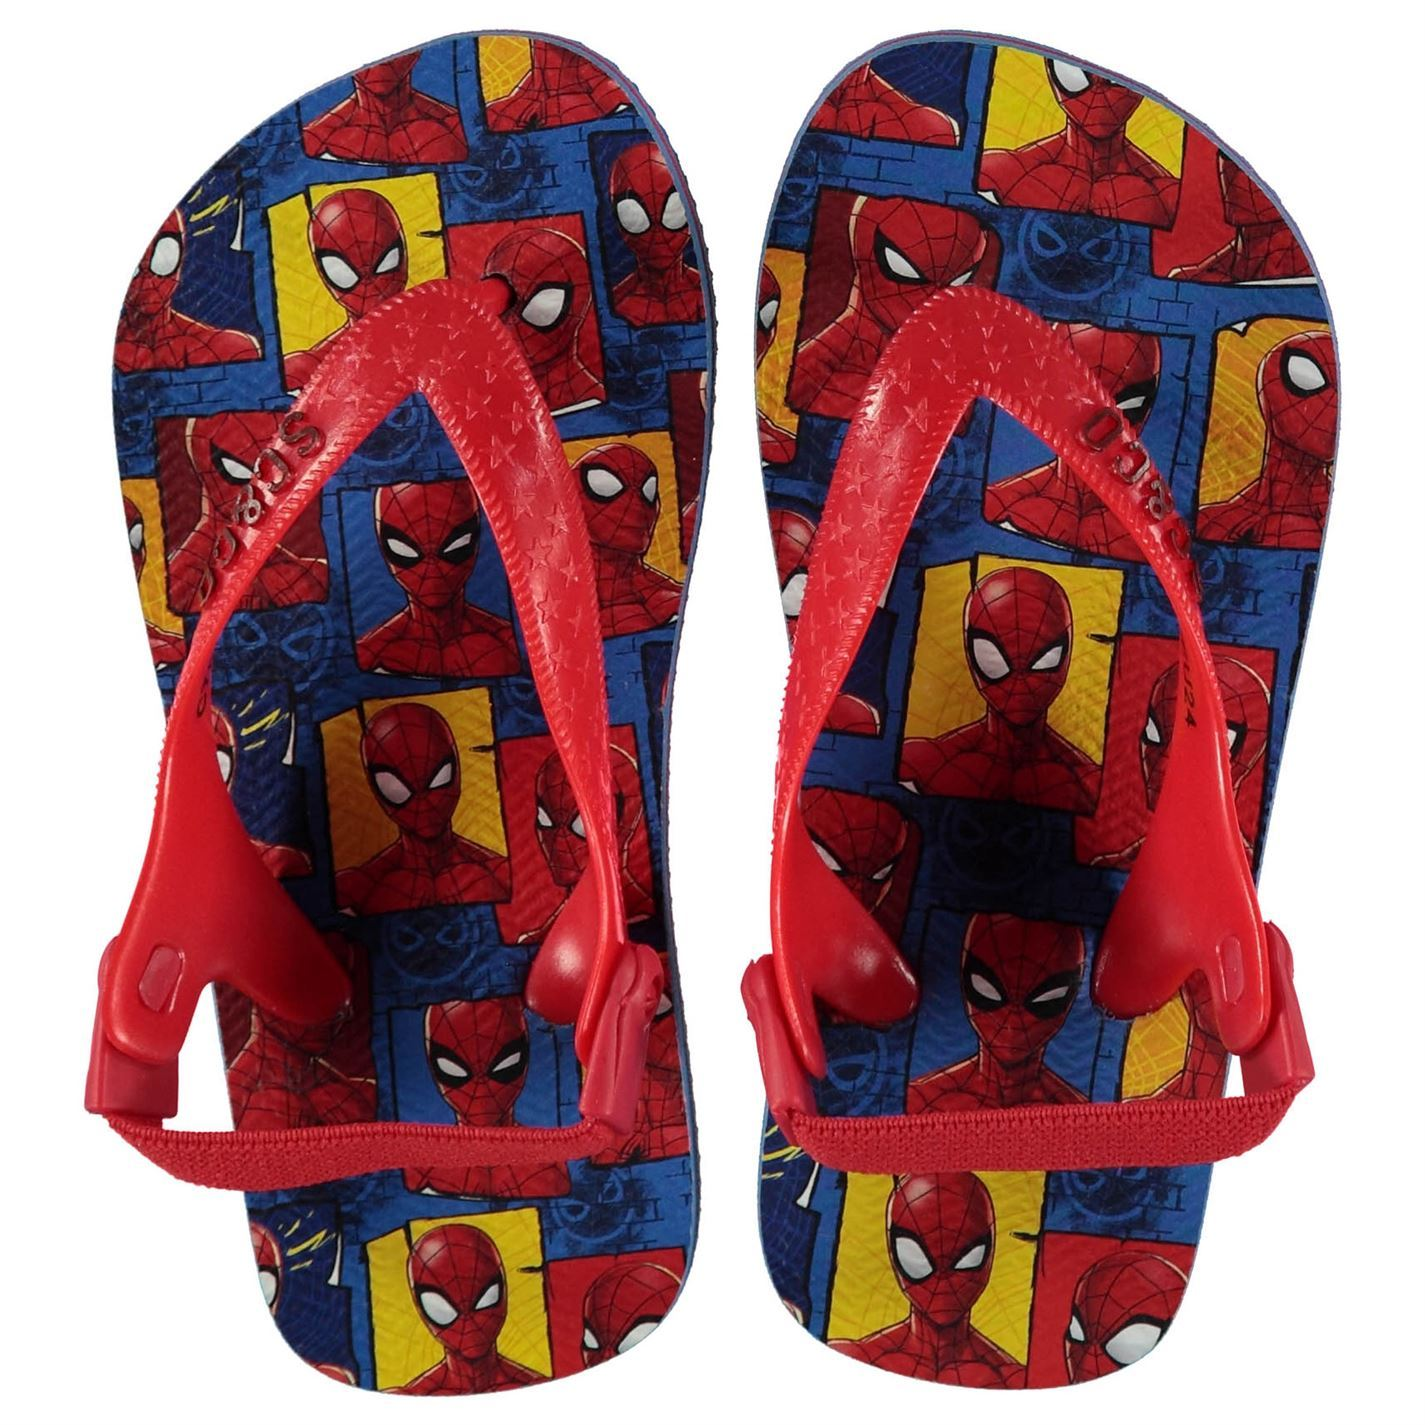 Boys Flip Flop style Sandals with Spiderman detail and elasticated back